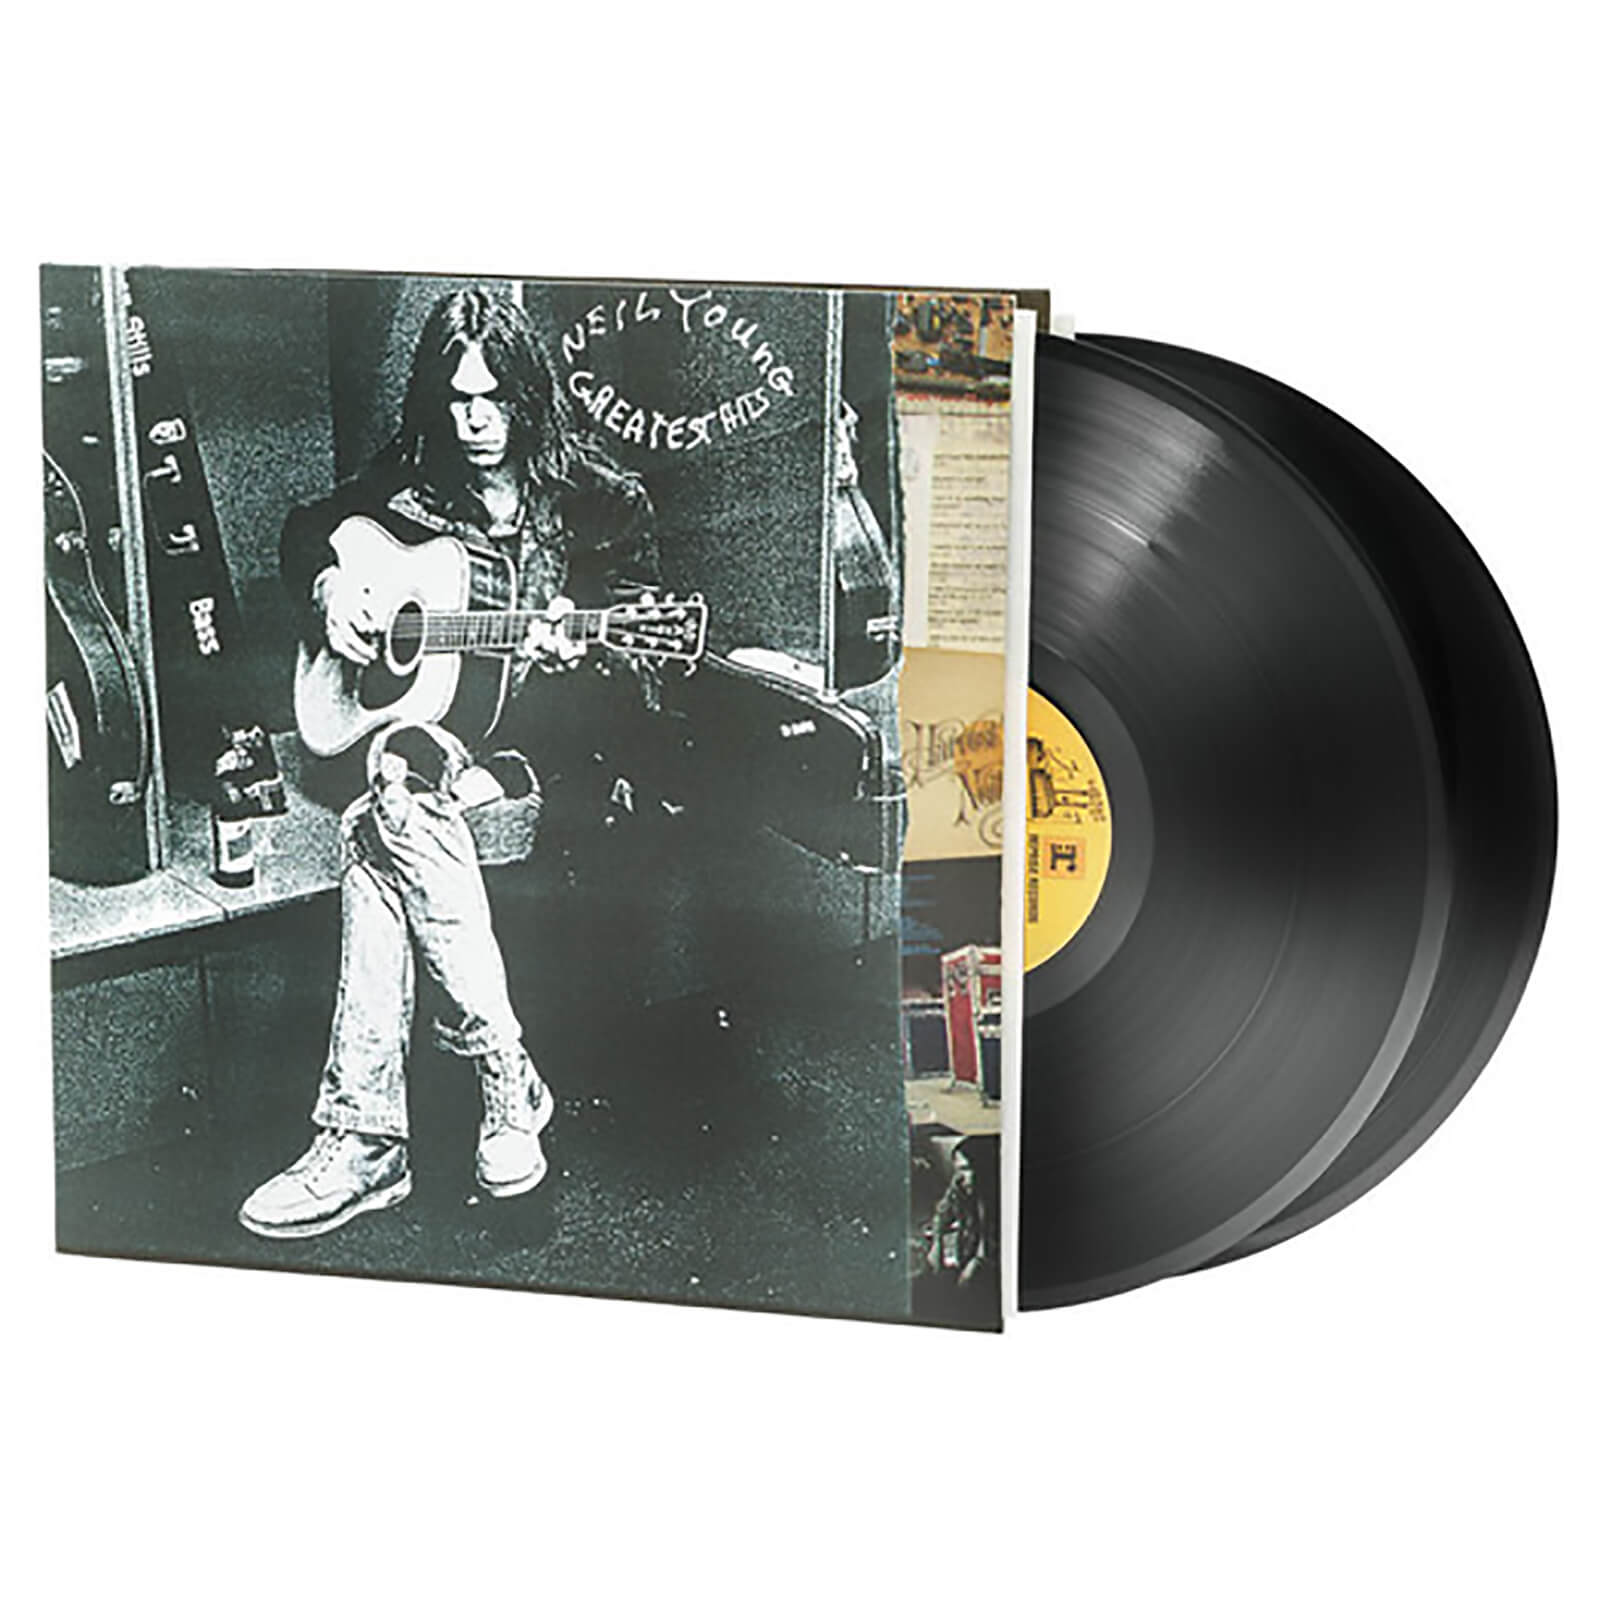 Neil Young - Greatest Hits - Vinyl